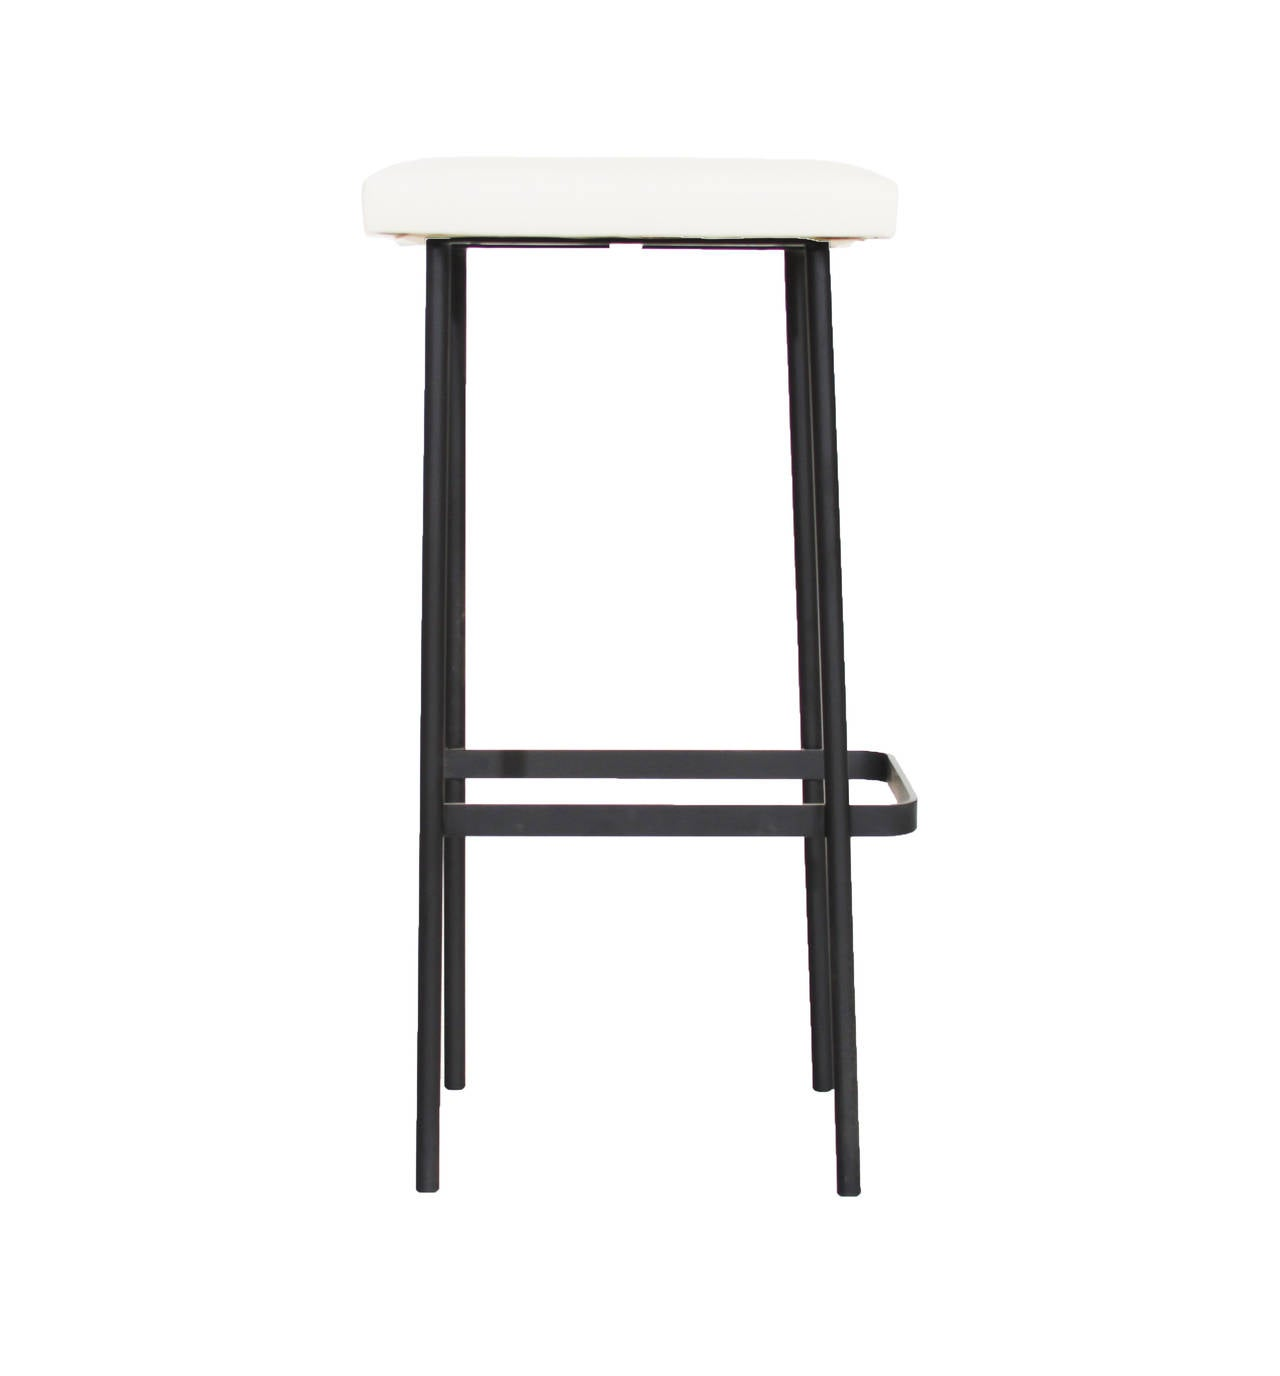 The Steel And Leather Bundinha Bar Stool By Thomas Hayes